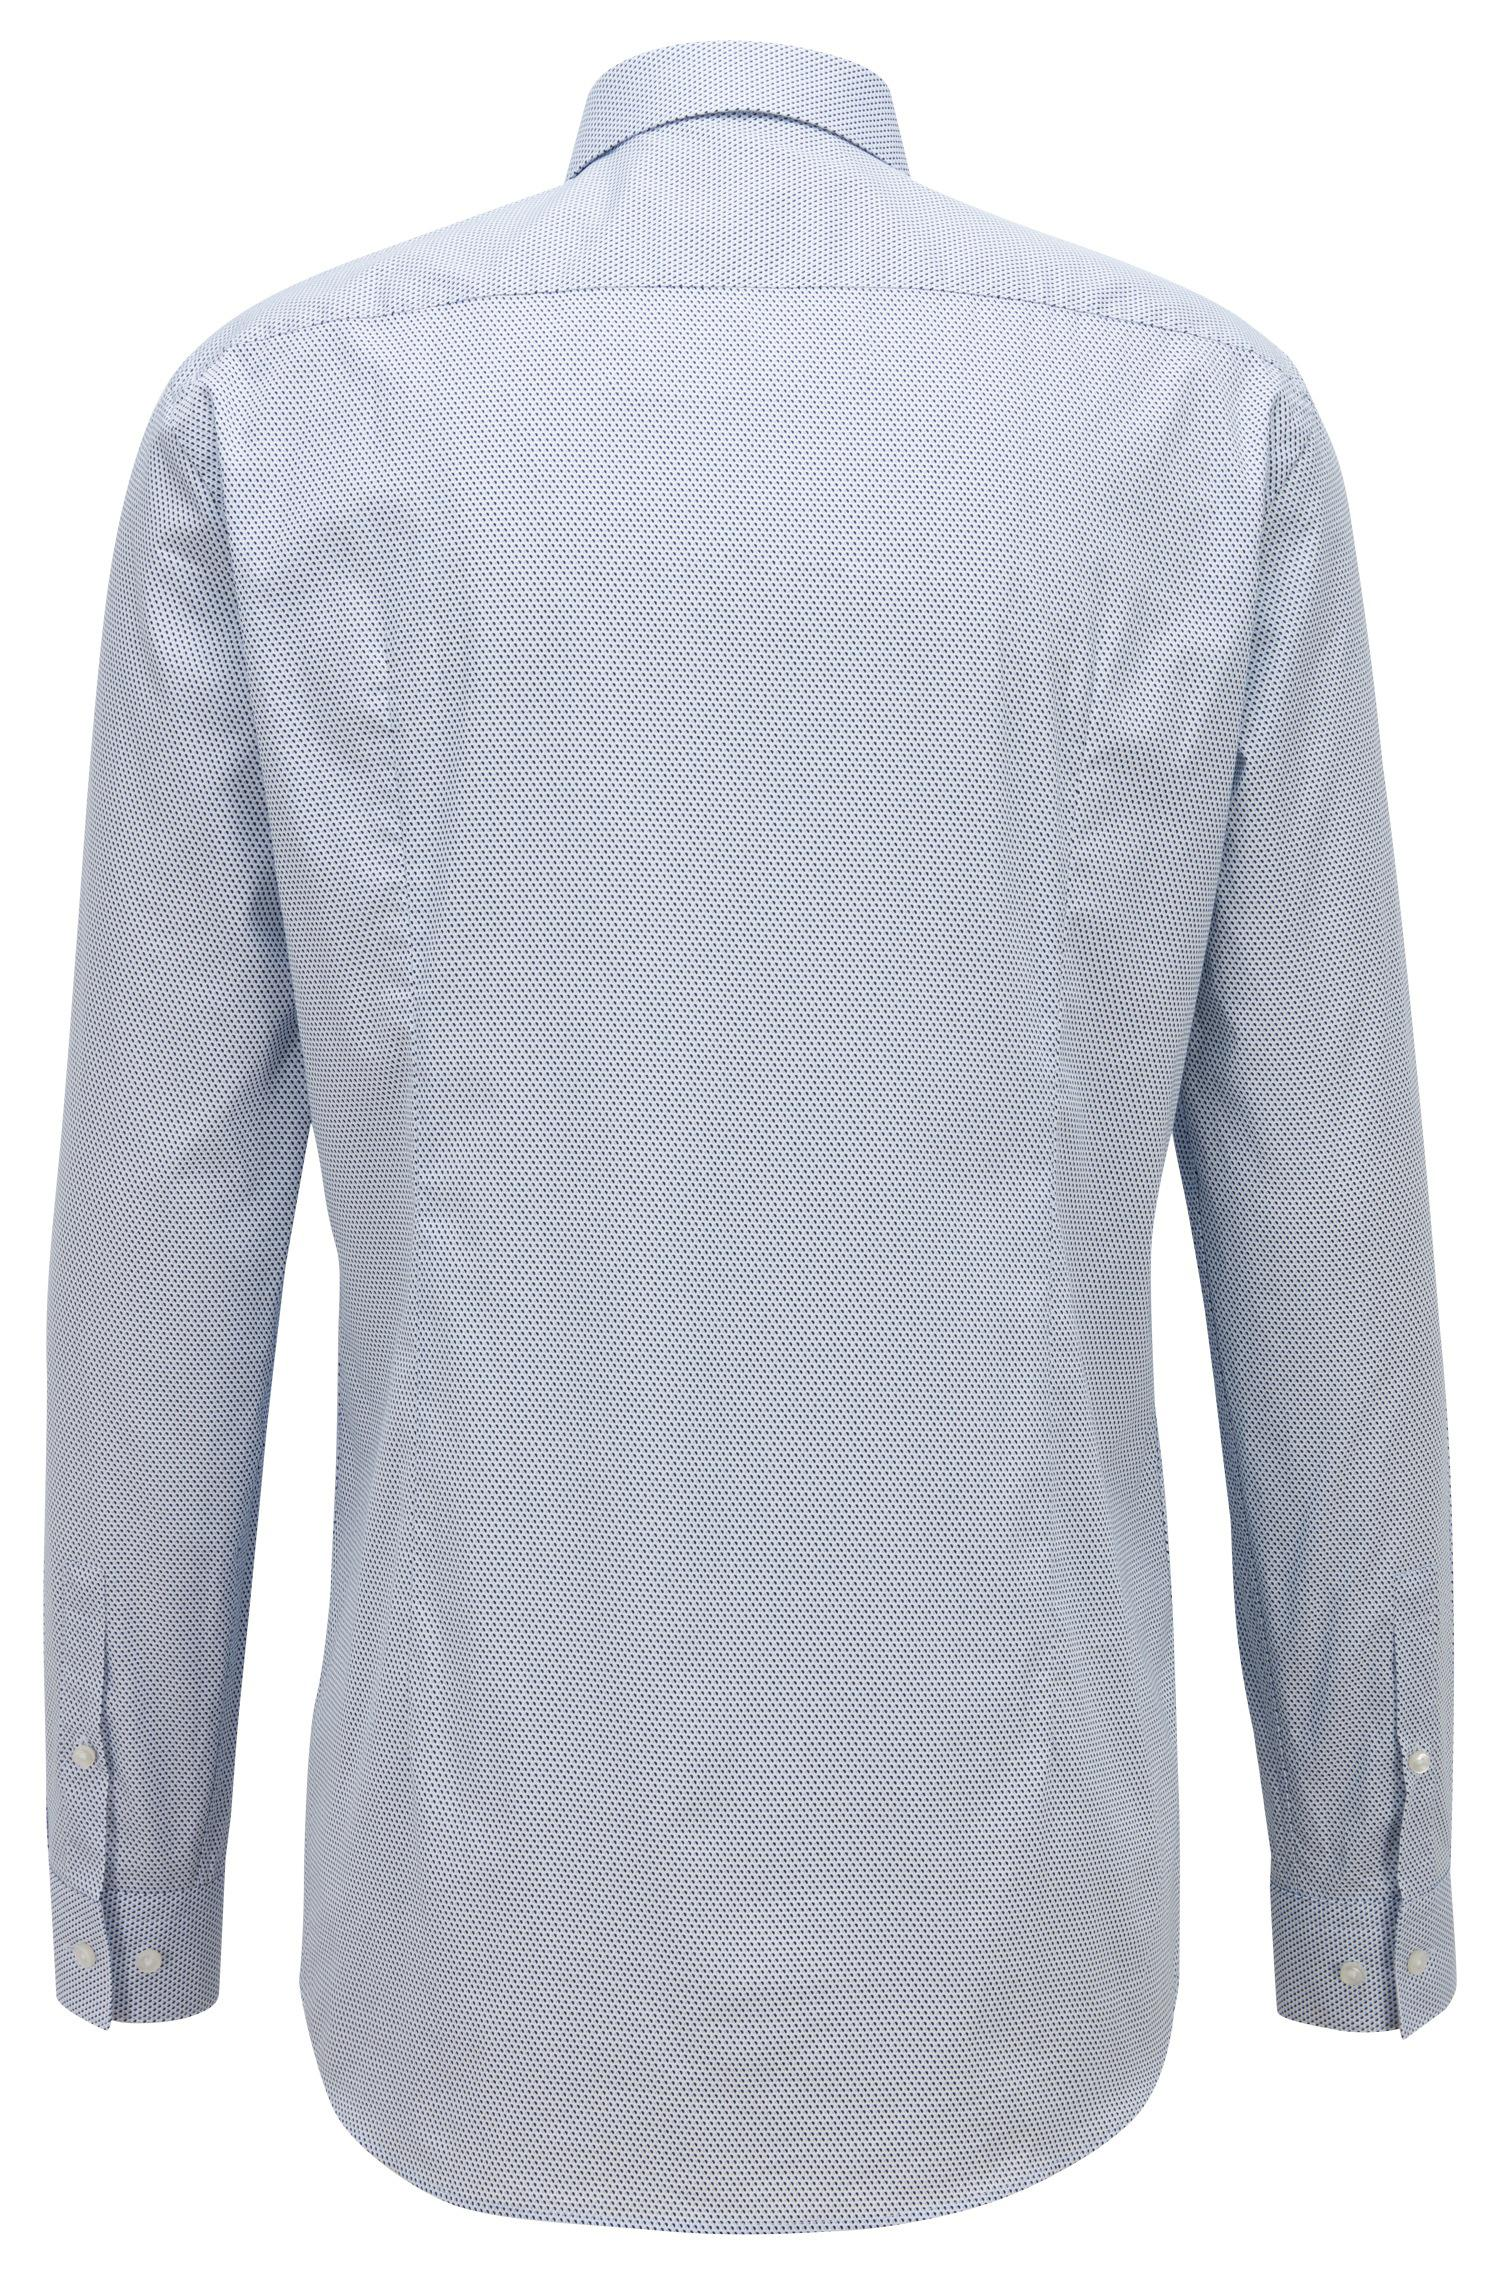 972a87811 Lyst - BOSS Cotton Slim-fit Shirt With Coolest Comfort Finishing in ...